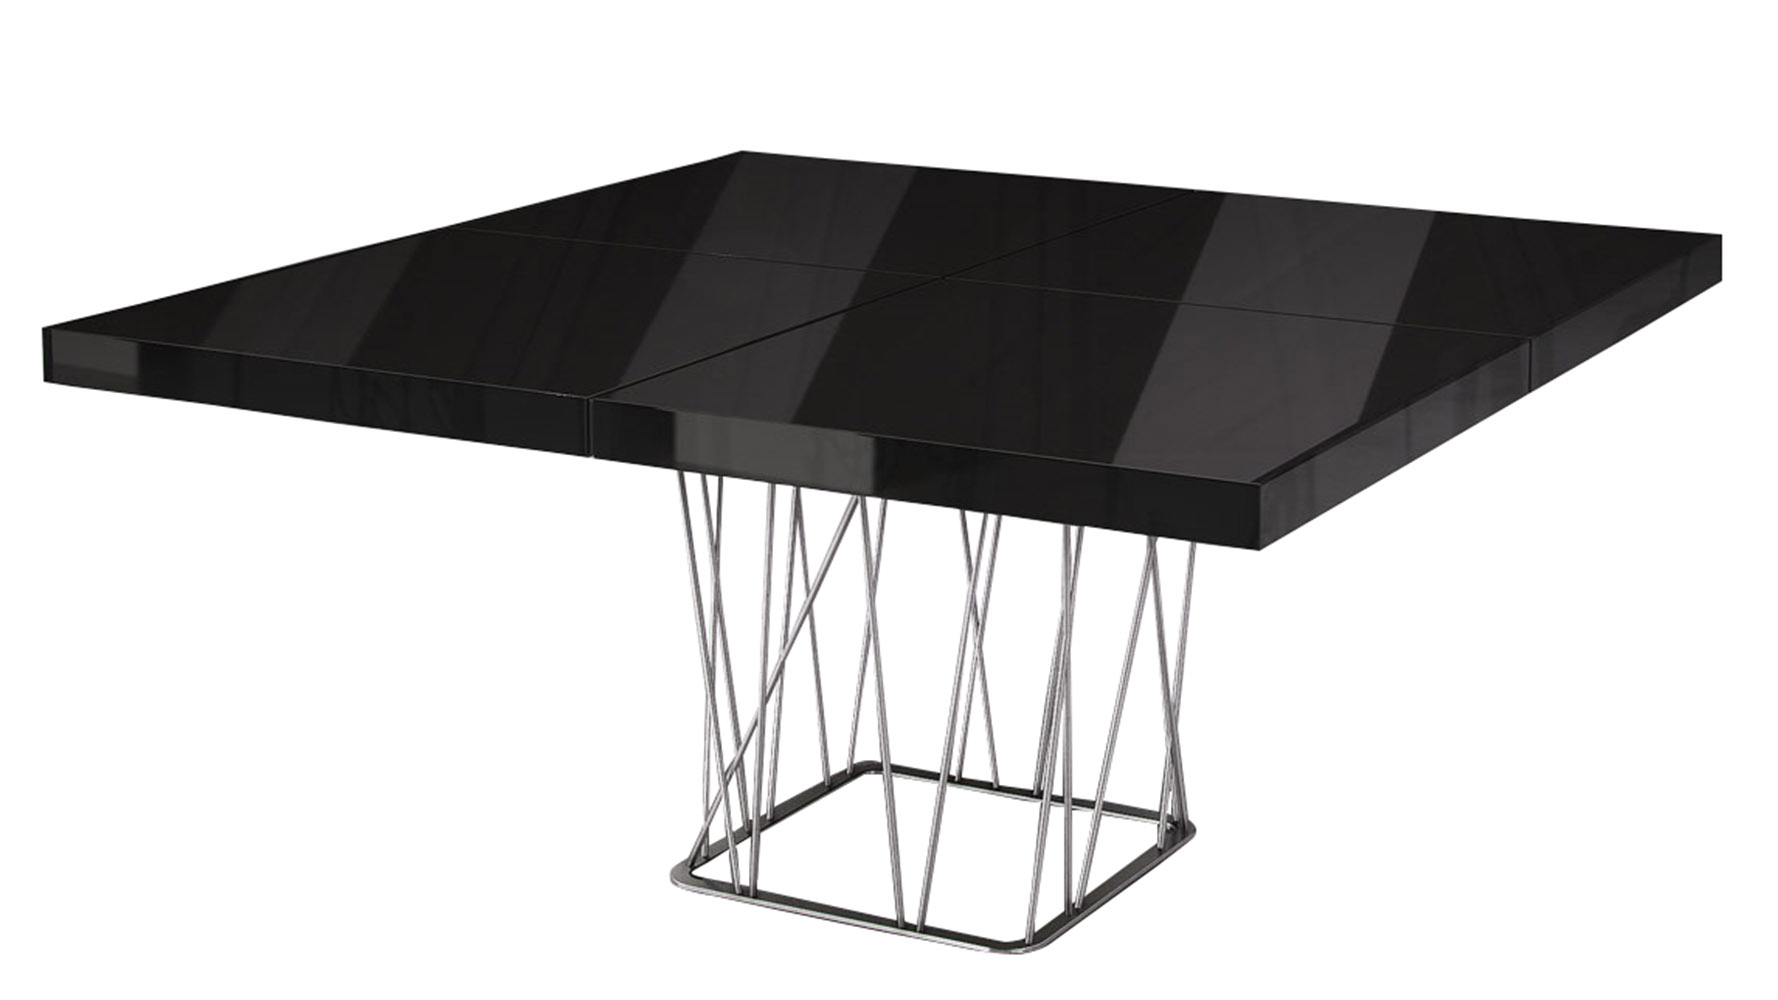 products wood lacquer material dining zuri modern cella table black new accent furniture wooden coffee designs storage chest tablecloths and placemats urban home pallet truck tool